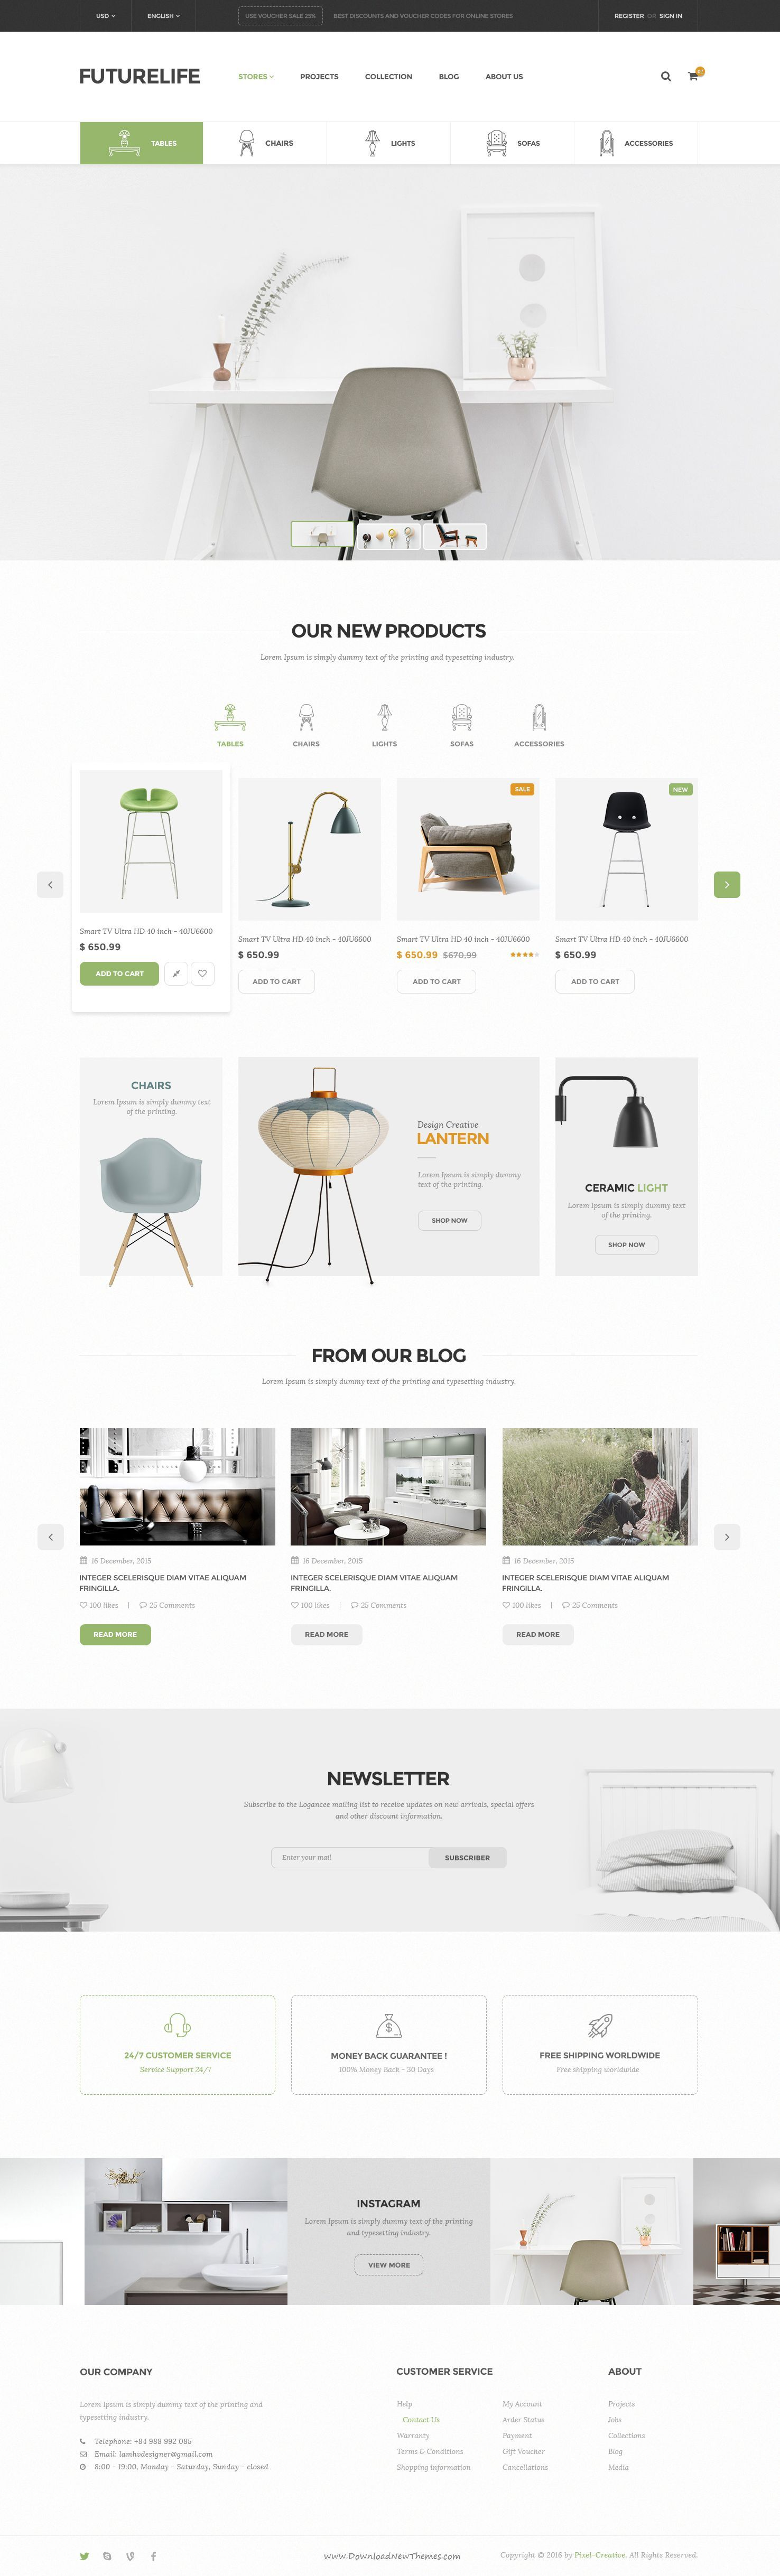 buy futurelife ecommerce psd template by on themeforest description futurelife u2013 ecommerce psd template is a uniquely ecommerce website